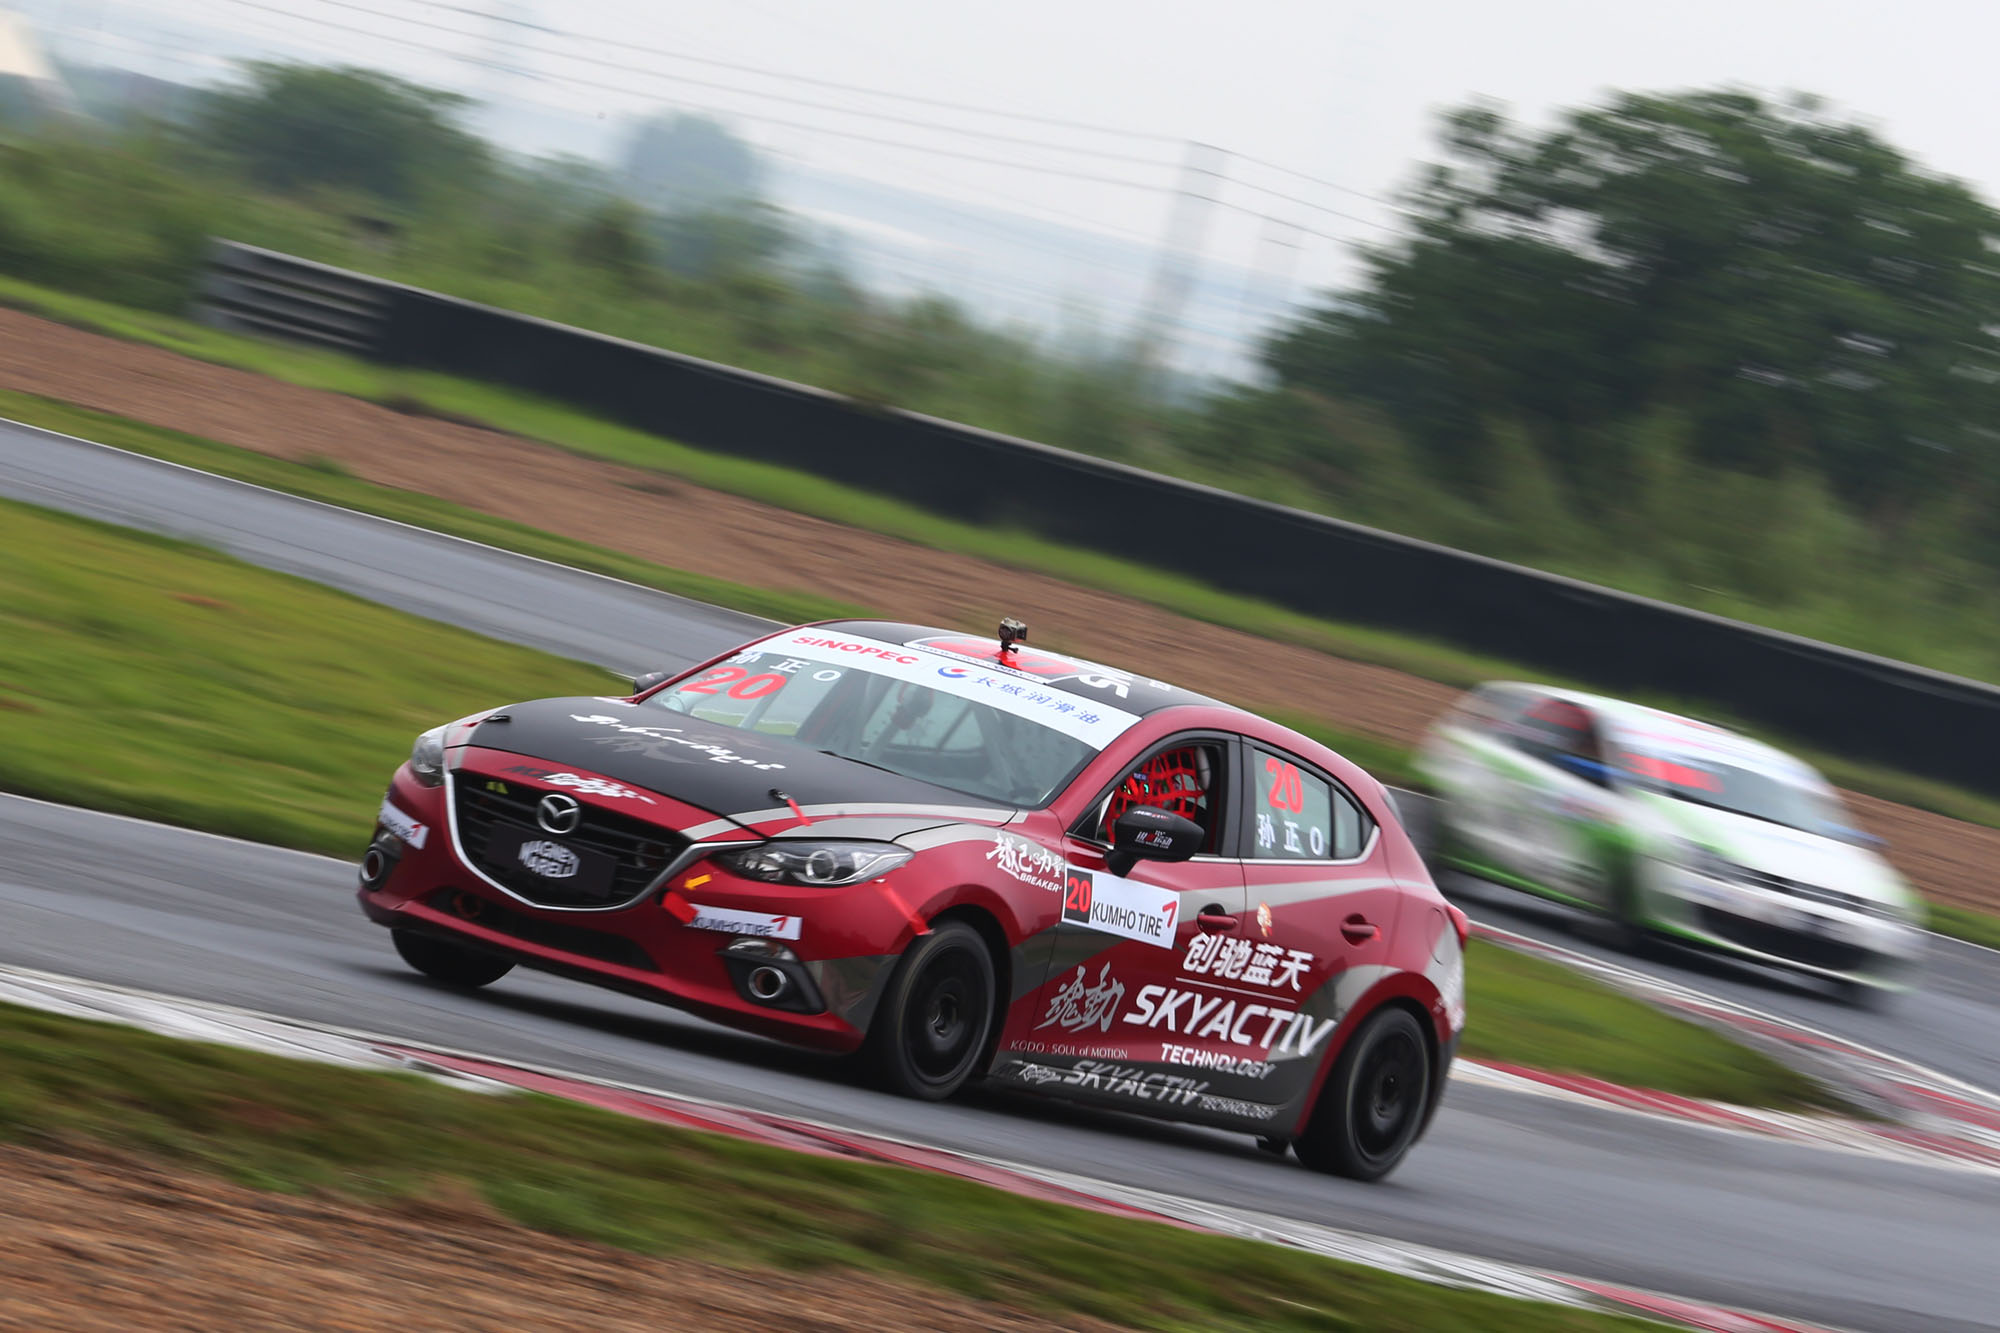 Mz Racing Mazda Motorsport Mazda 6 And Mazda 3 Debut At Ctcc